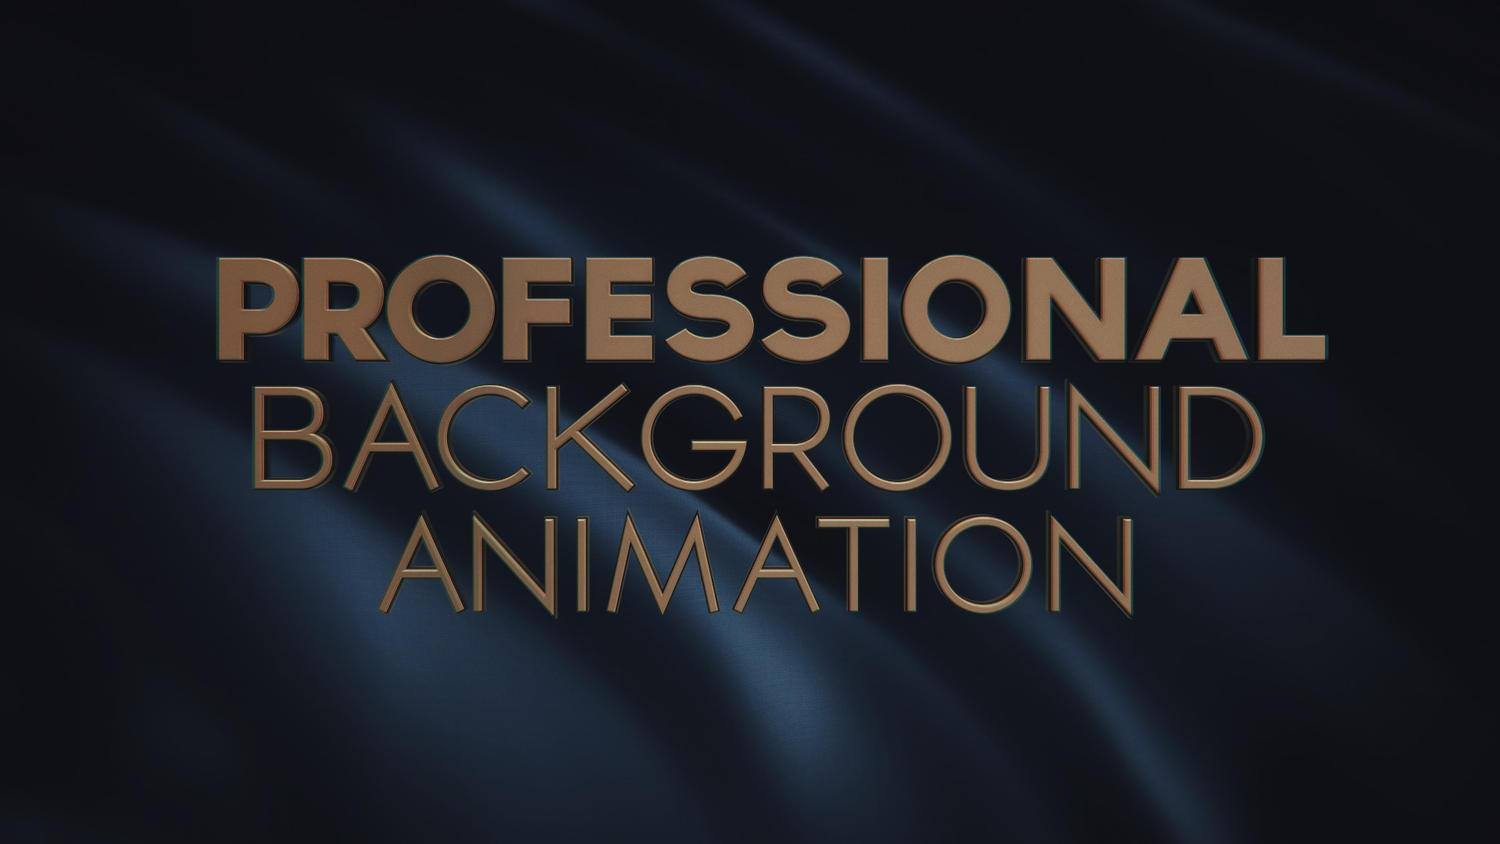 Professional Background Animation by TiborMiklos - 115990